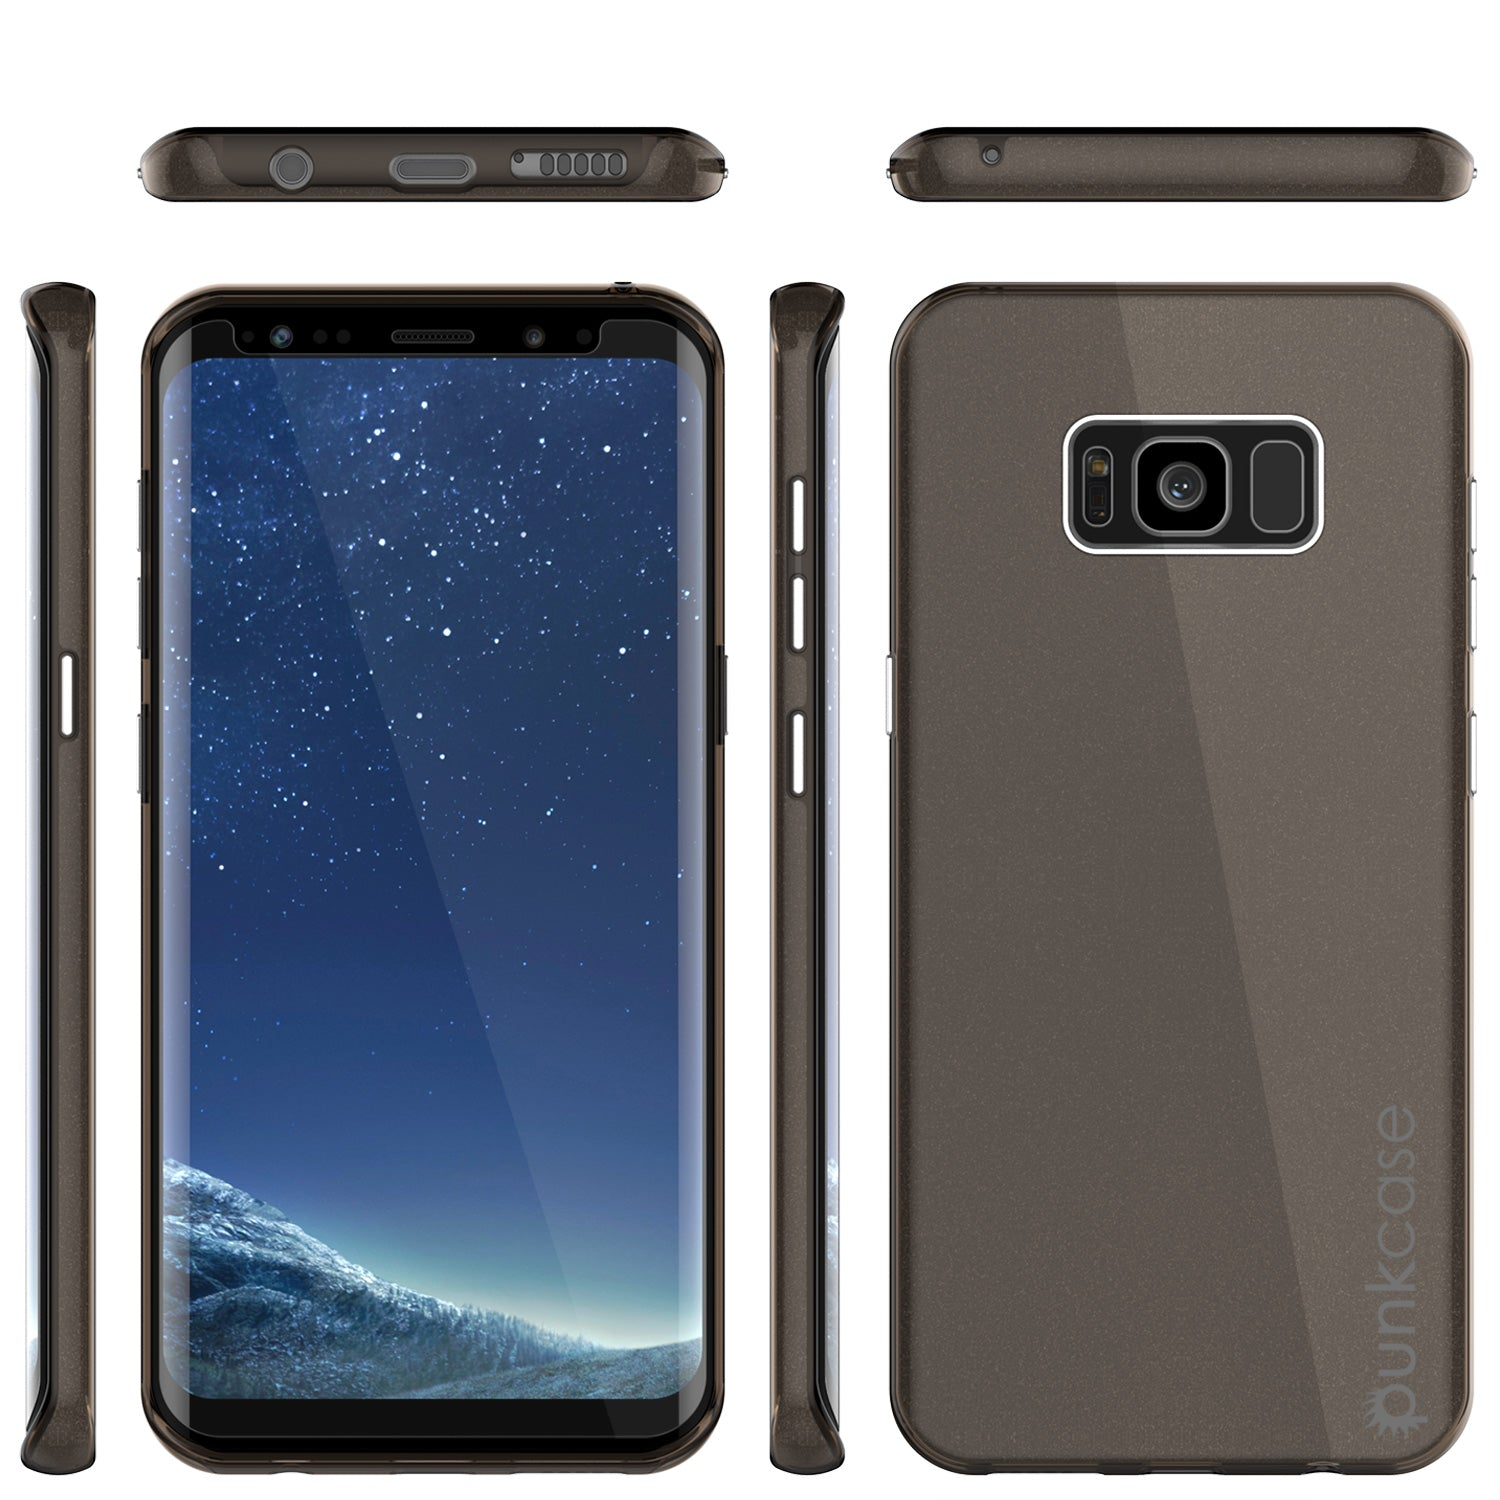 Galaxy S8 Plus Case, Punkcase Galactic 2.0 Series Ultra Slim Protective Armor TPU Cover [Black]